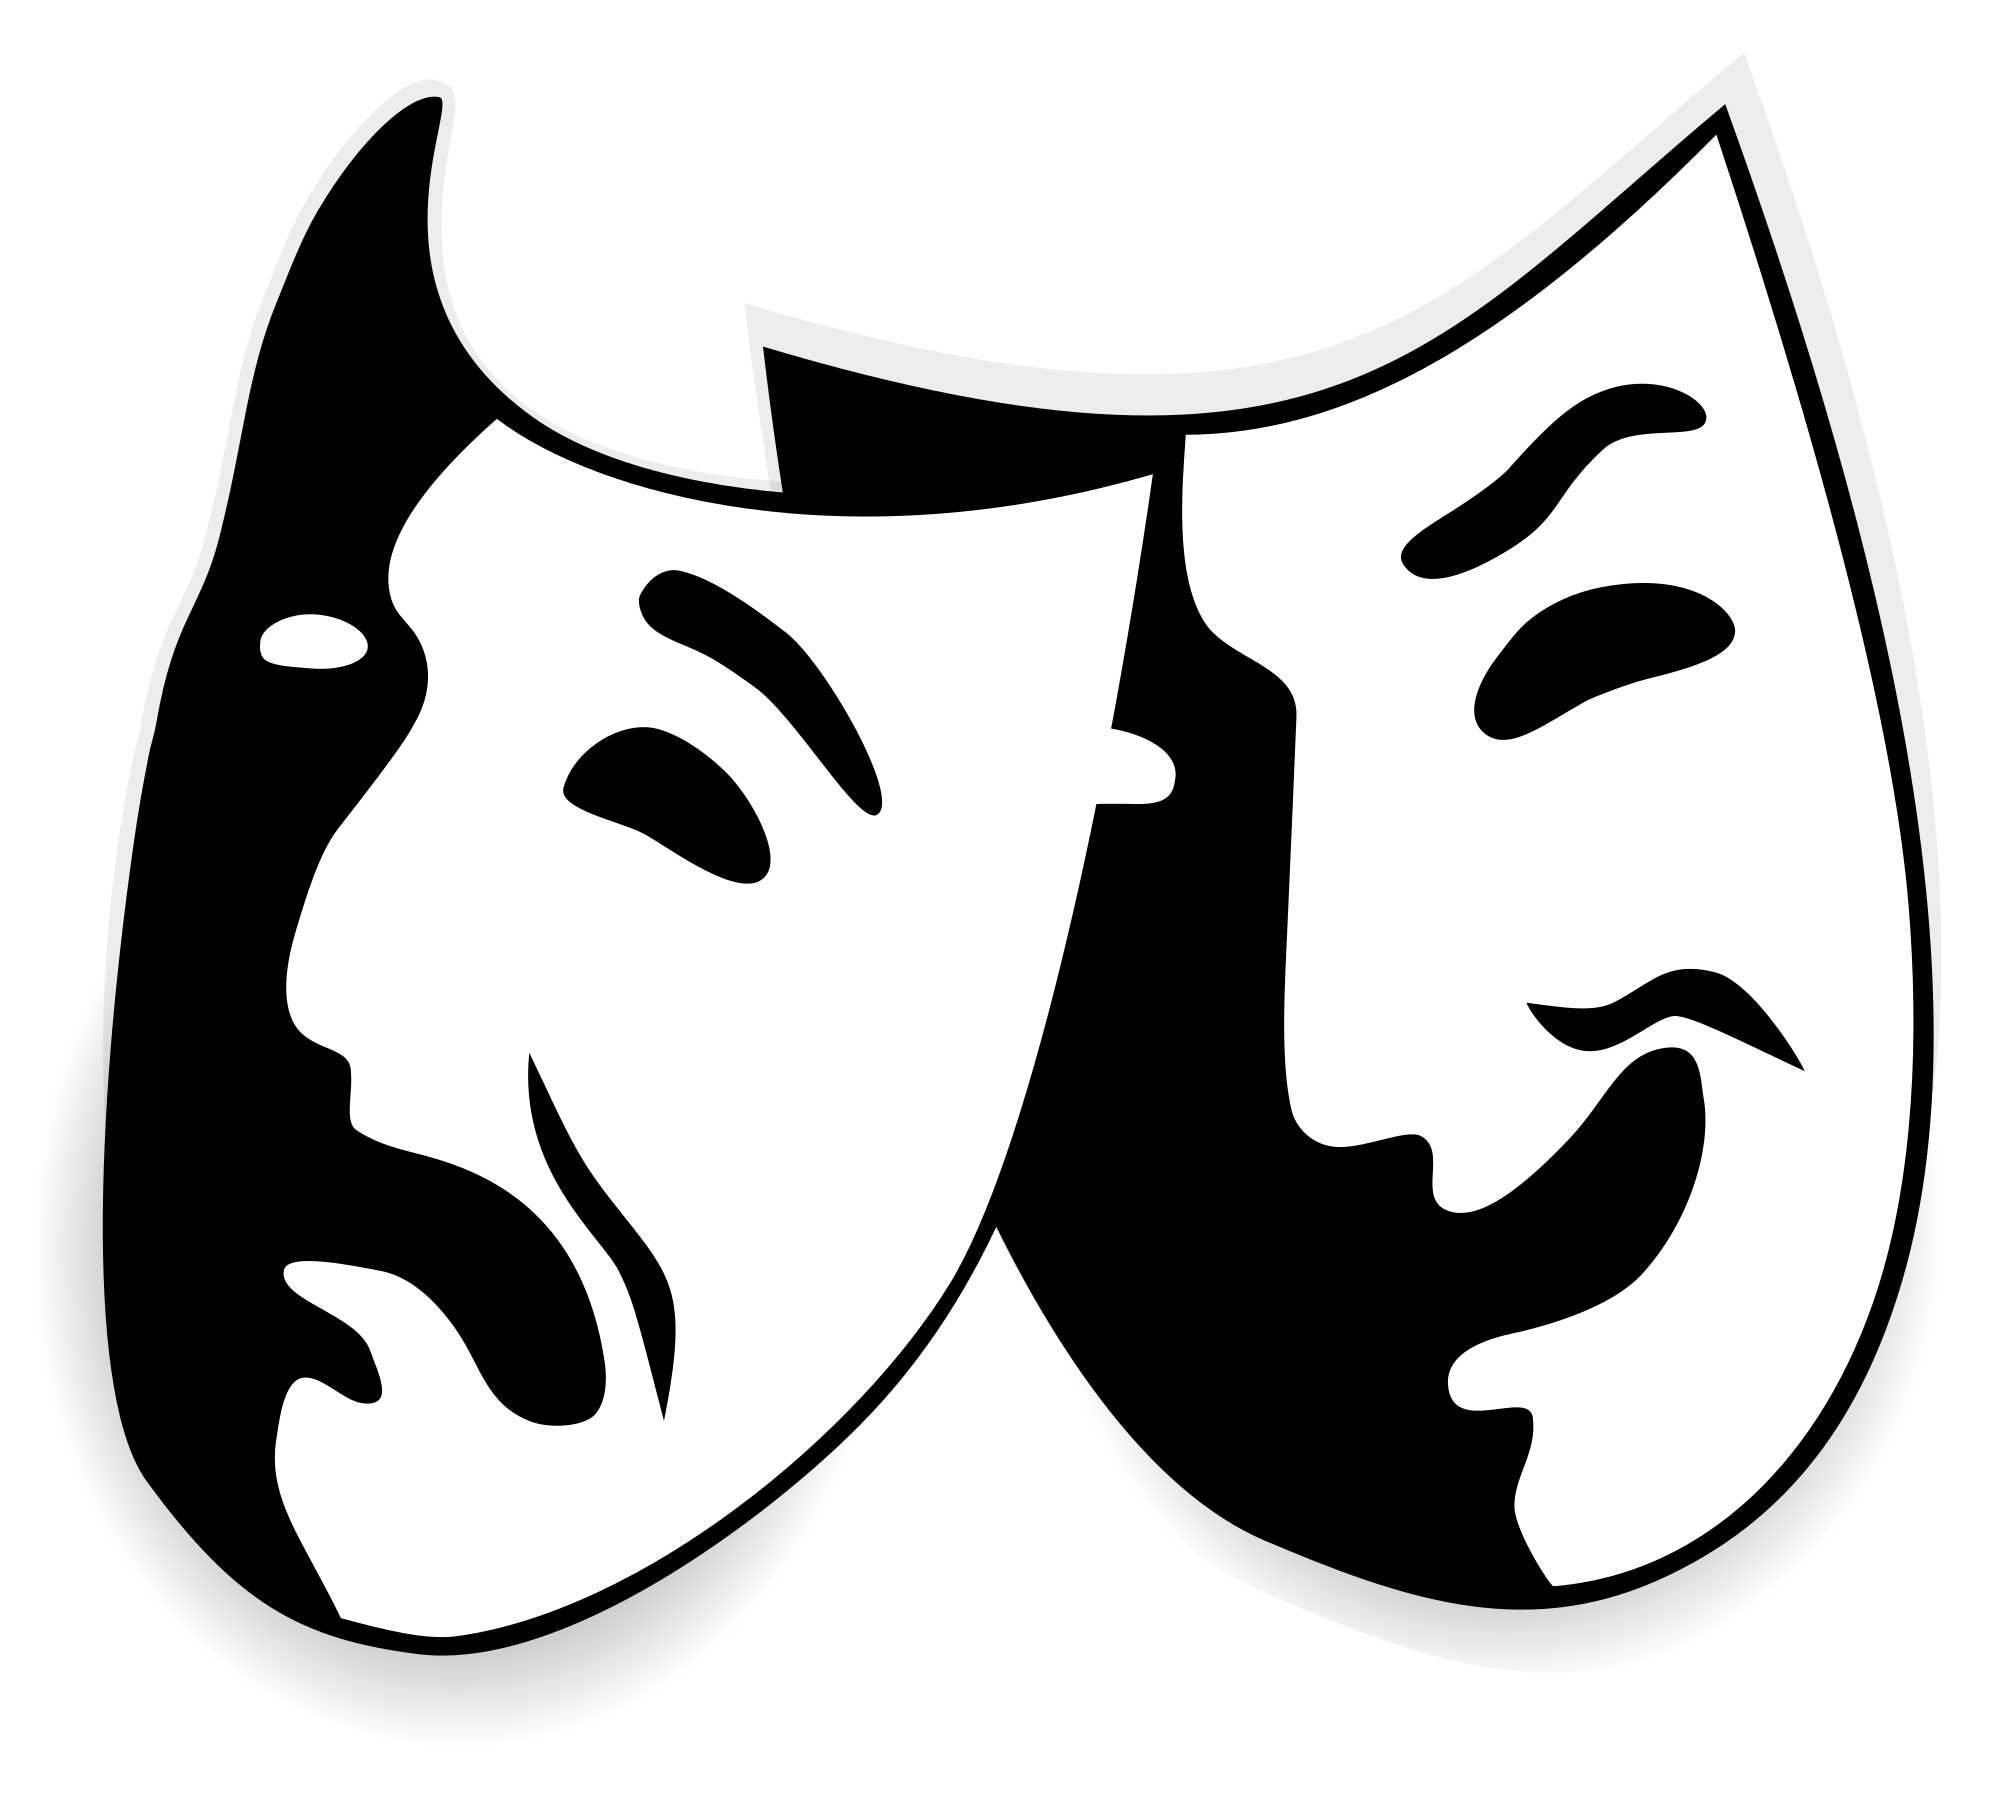 Theatre clipart opera stage. File comedy and tragedy